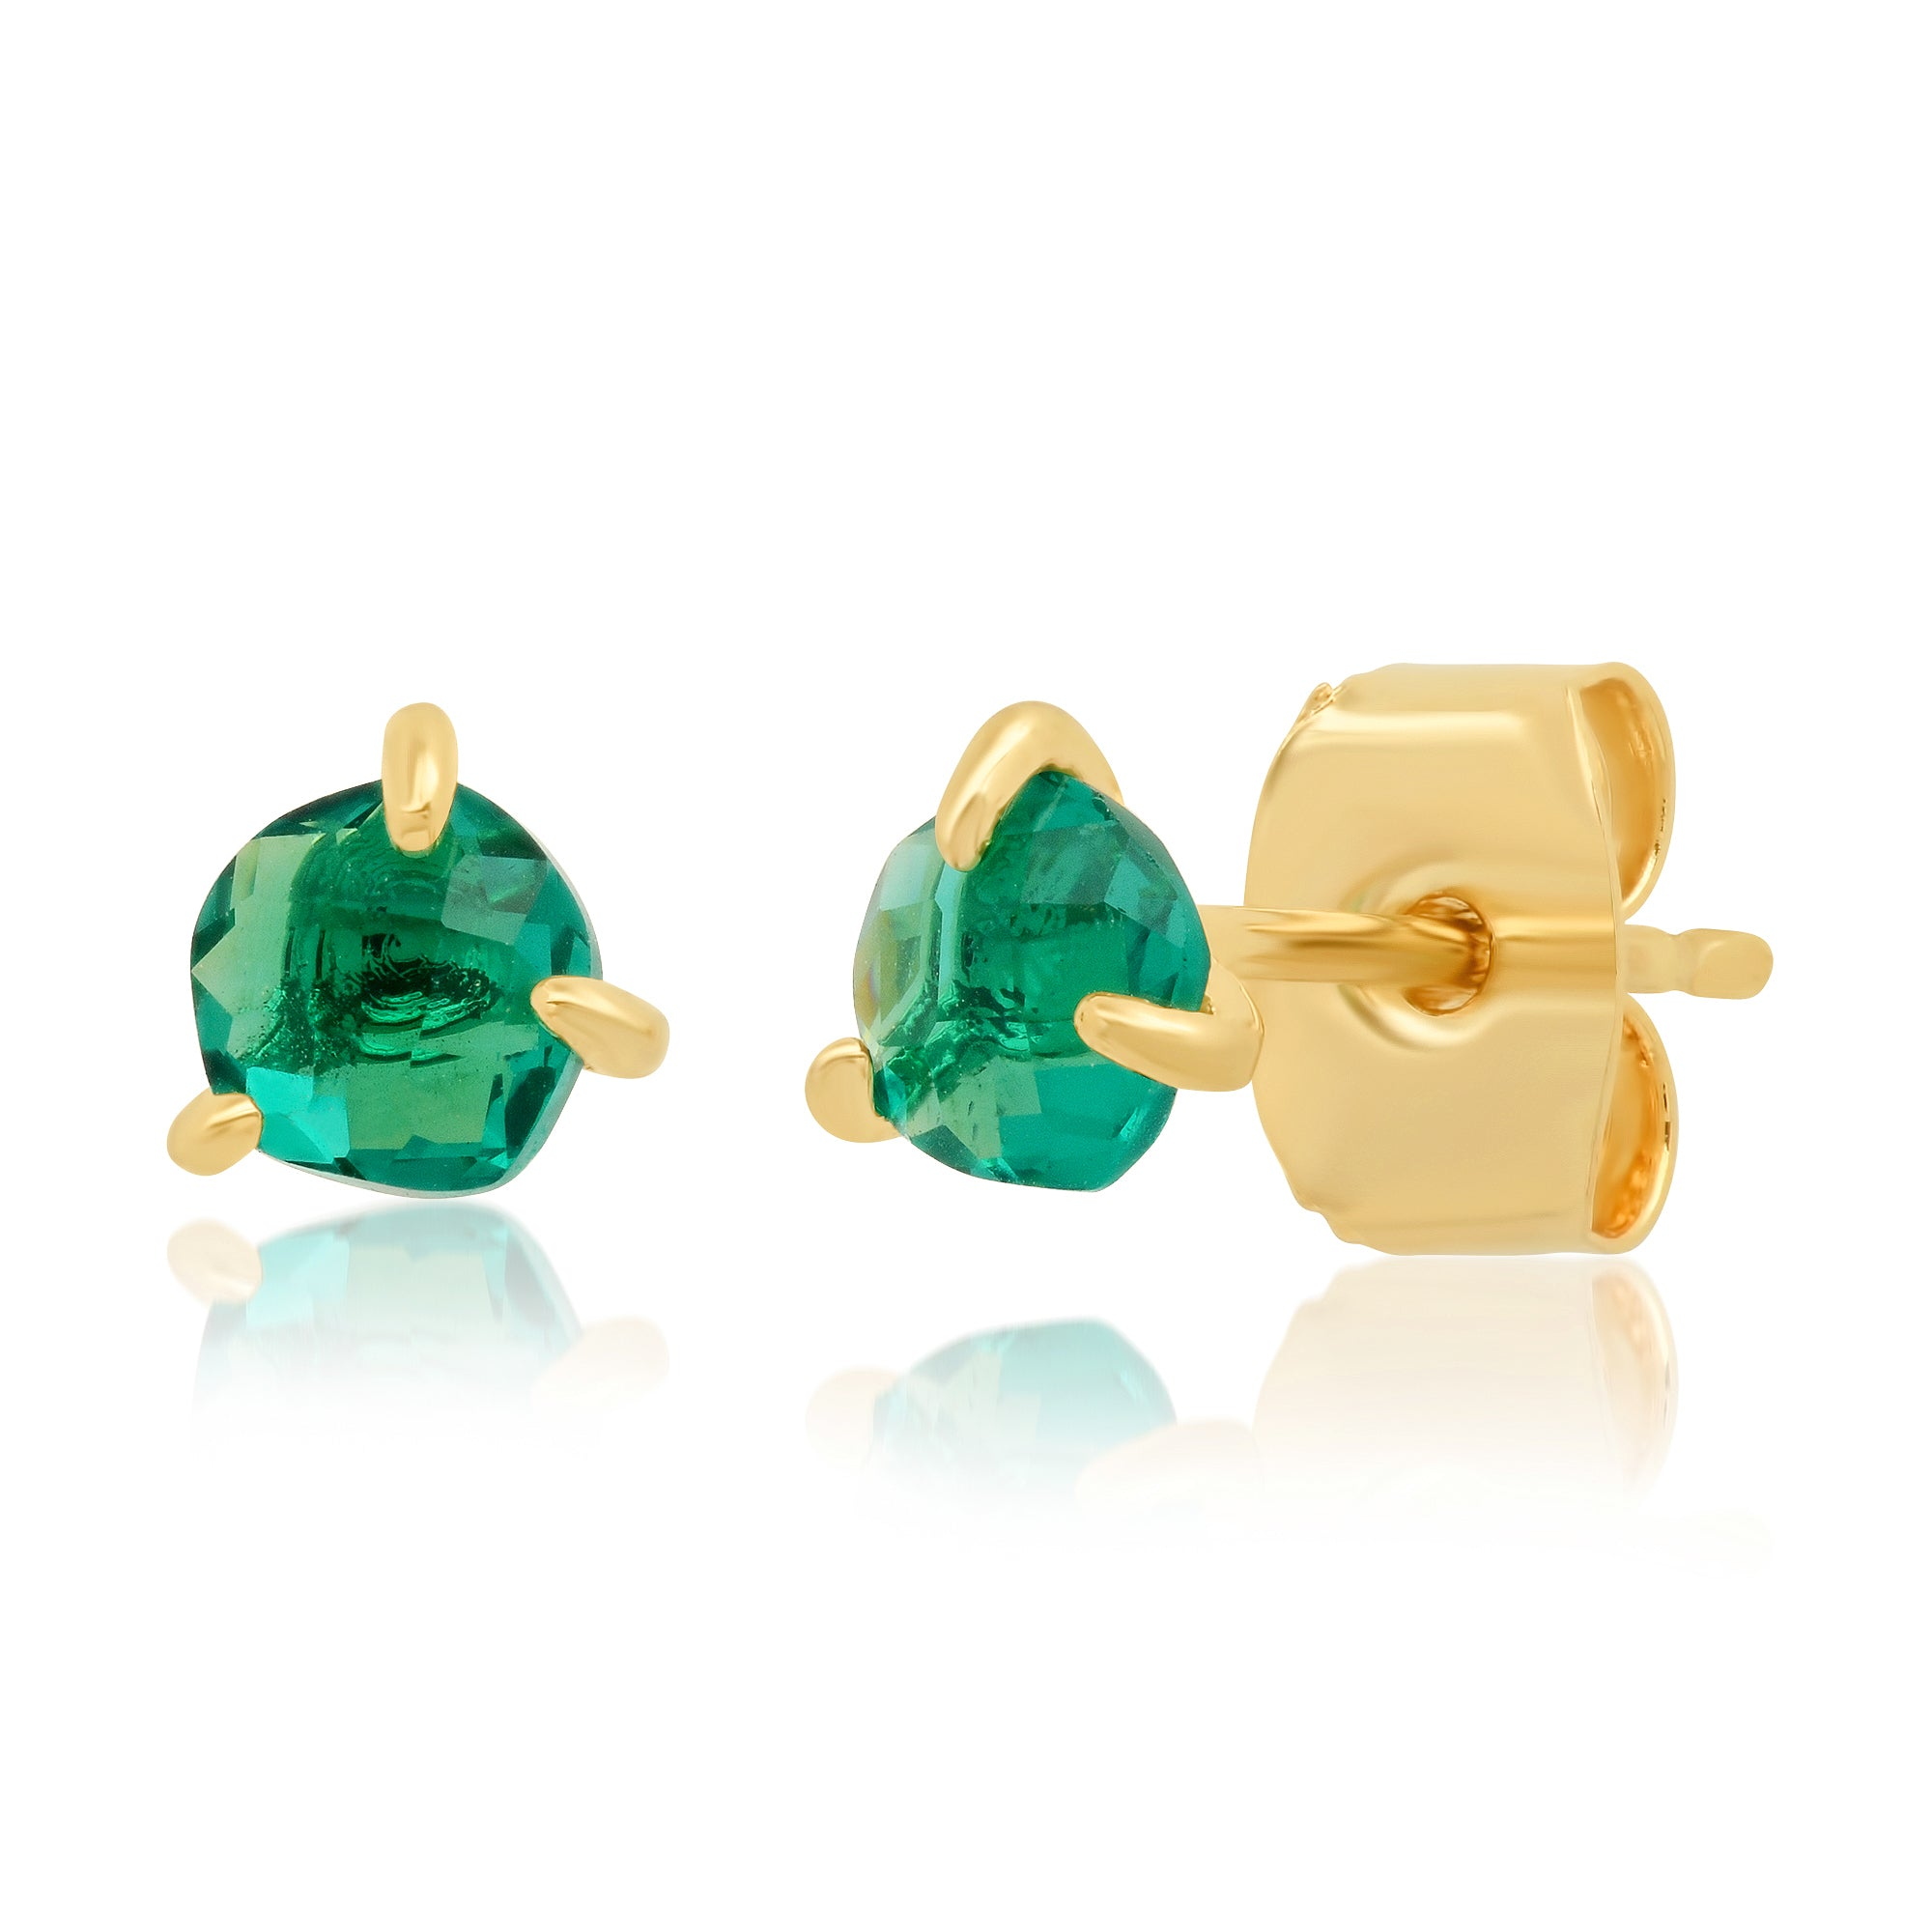 Tai Organic Glass Stud Earrings